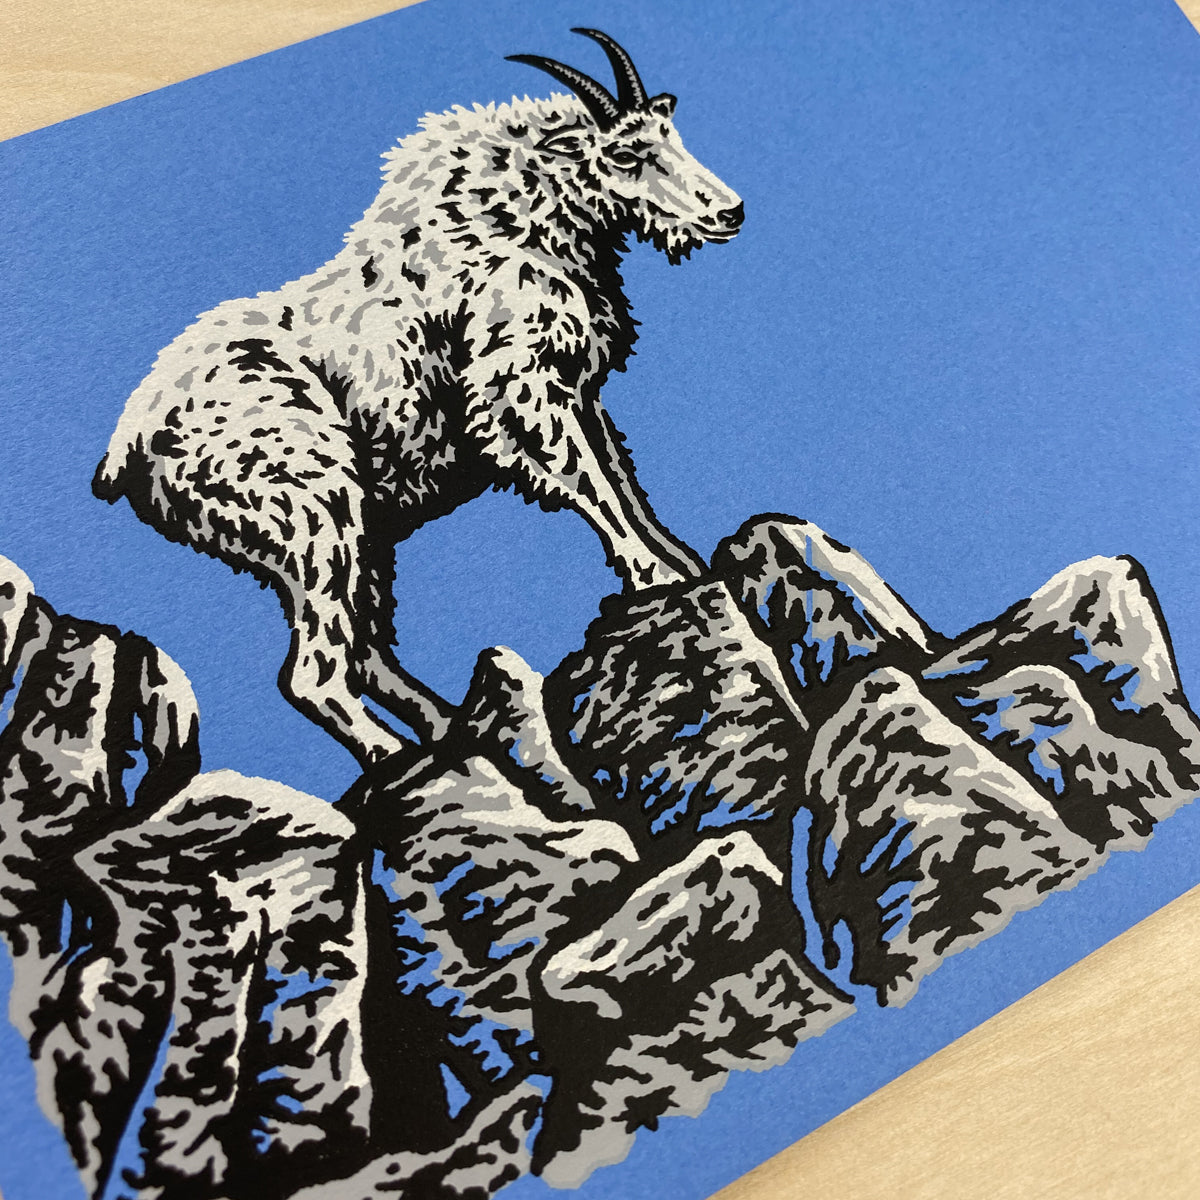 Colorado Mountain Goat - Signed 7x5in Print #224